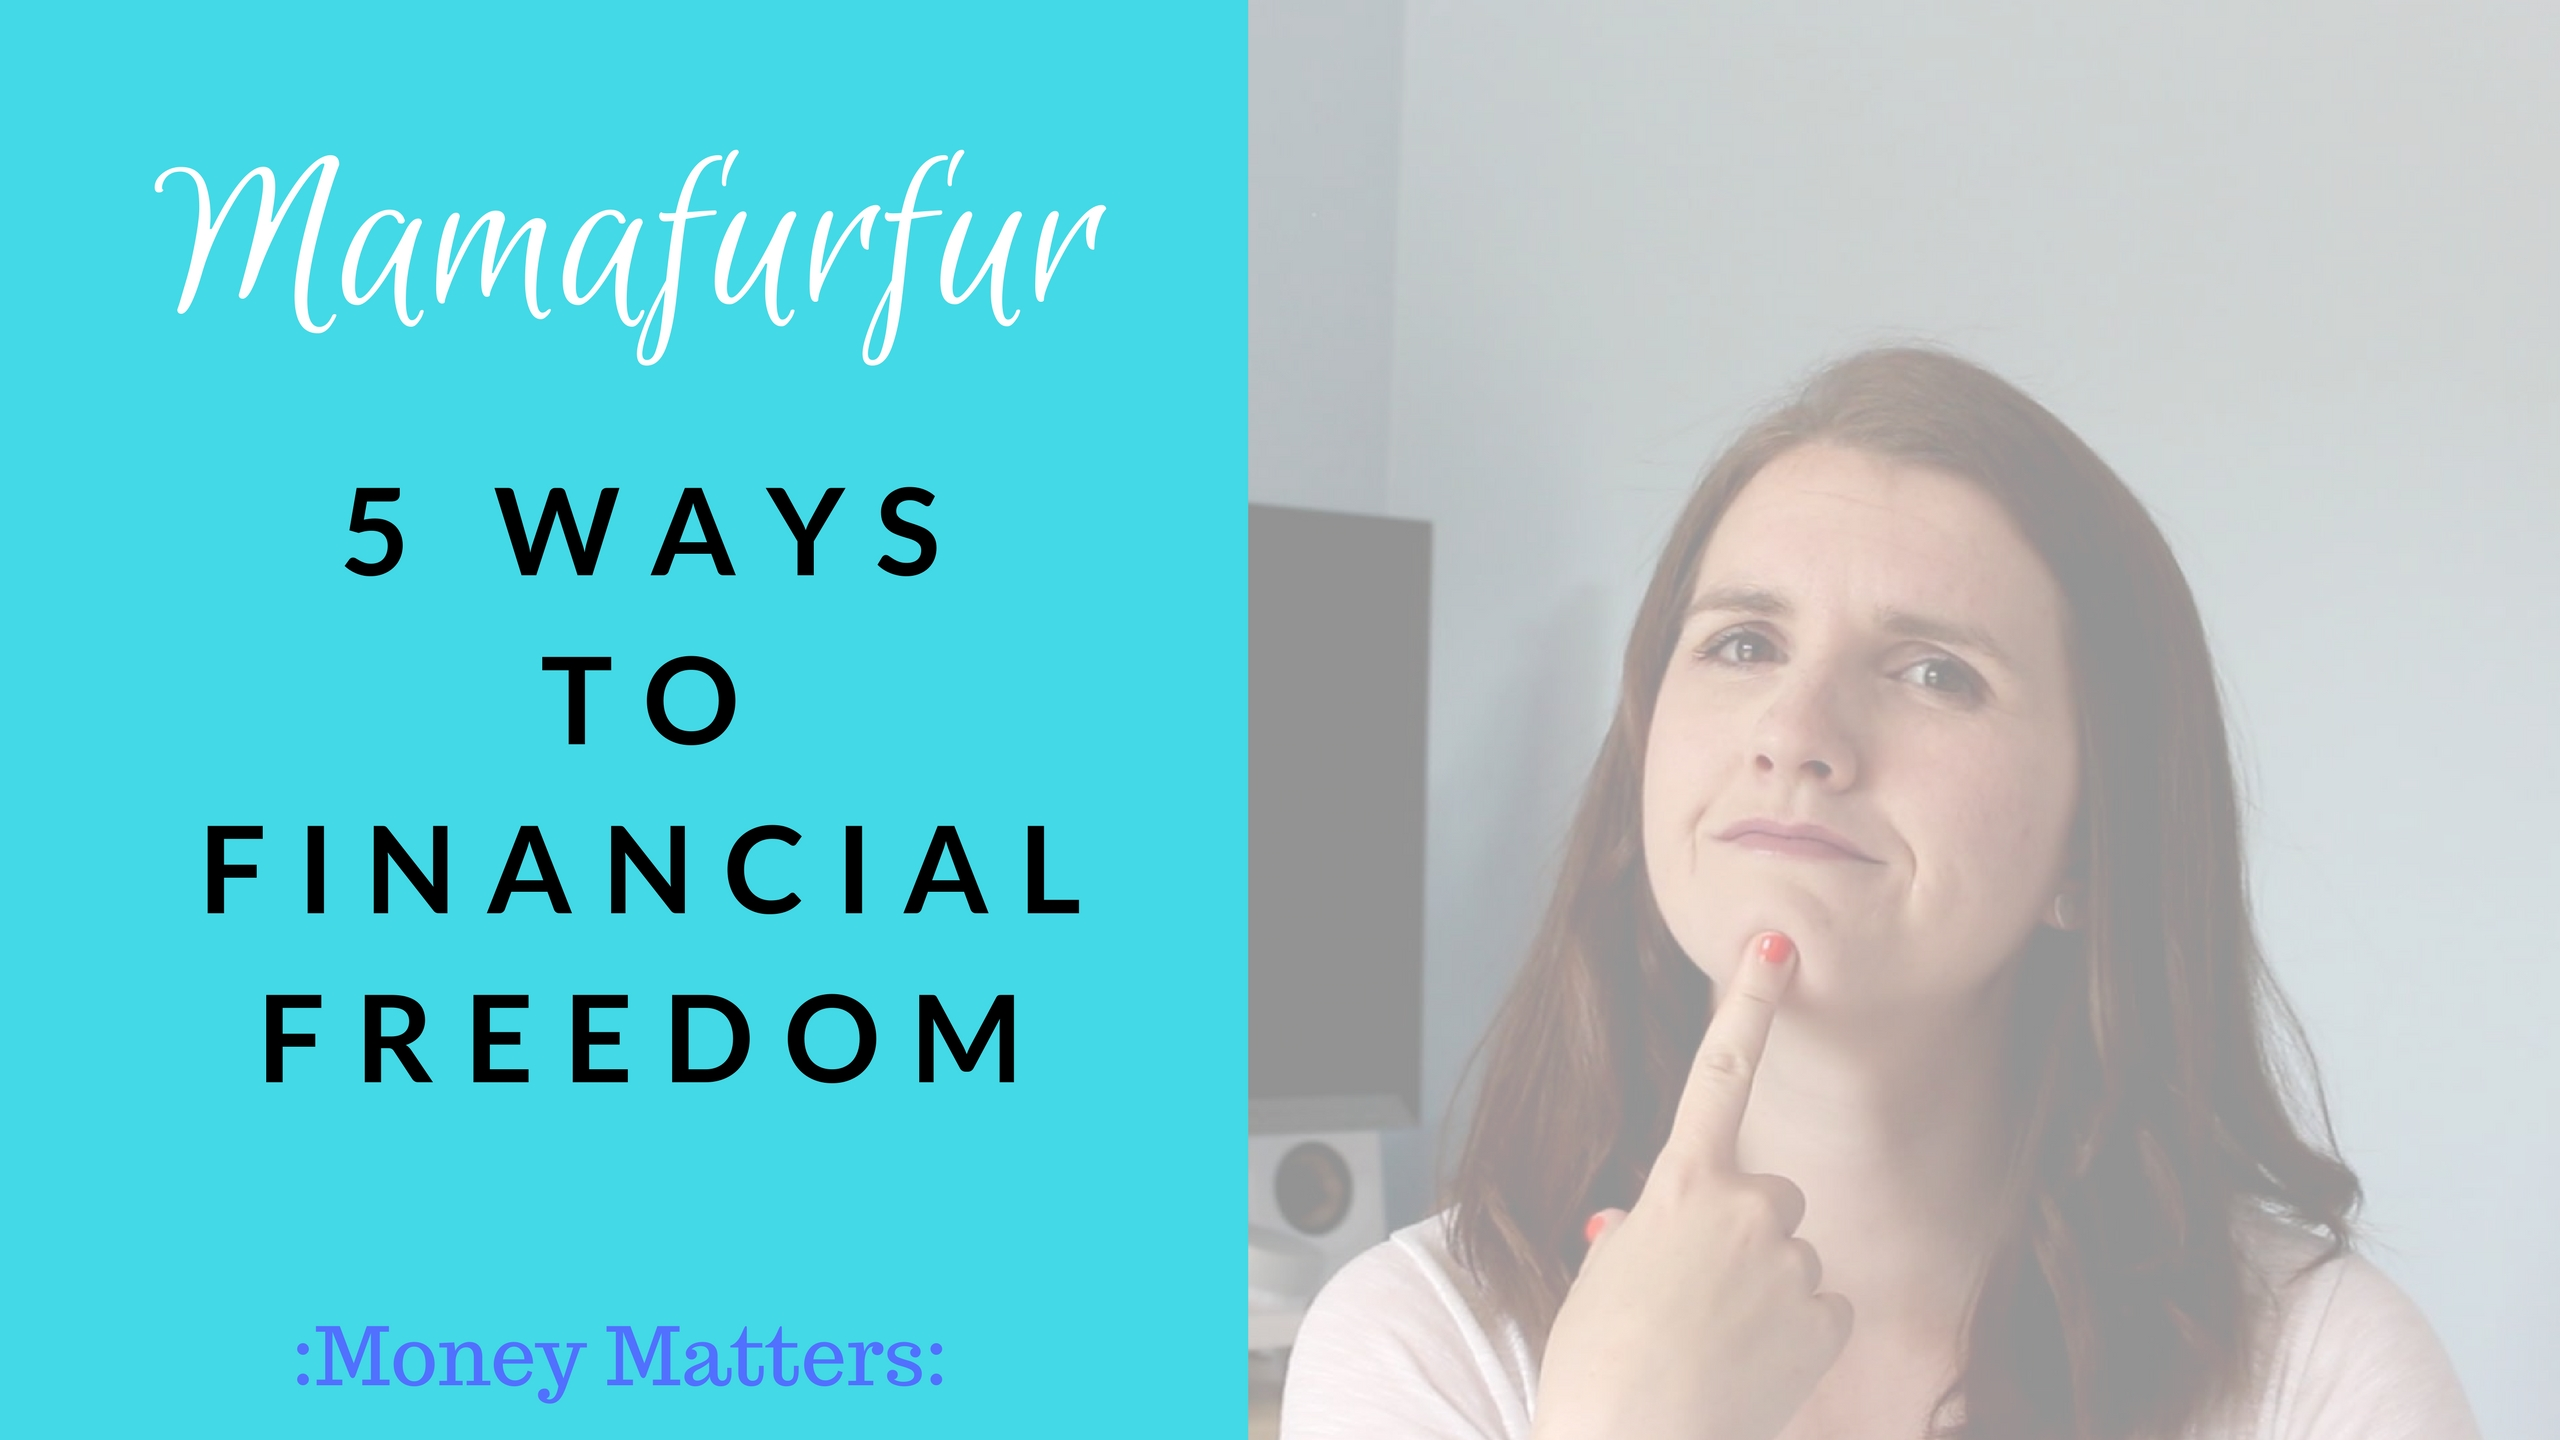 5 ways to Financial Freedom – Mamafurfur Youtube Channel